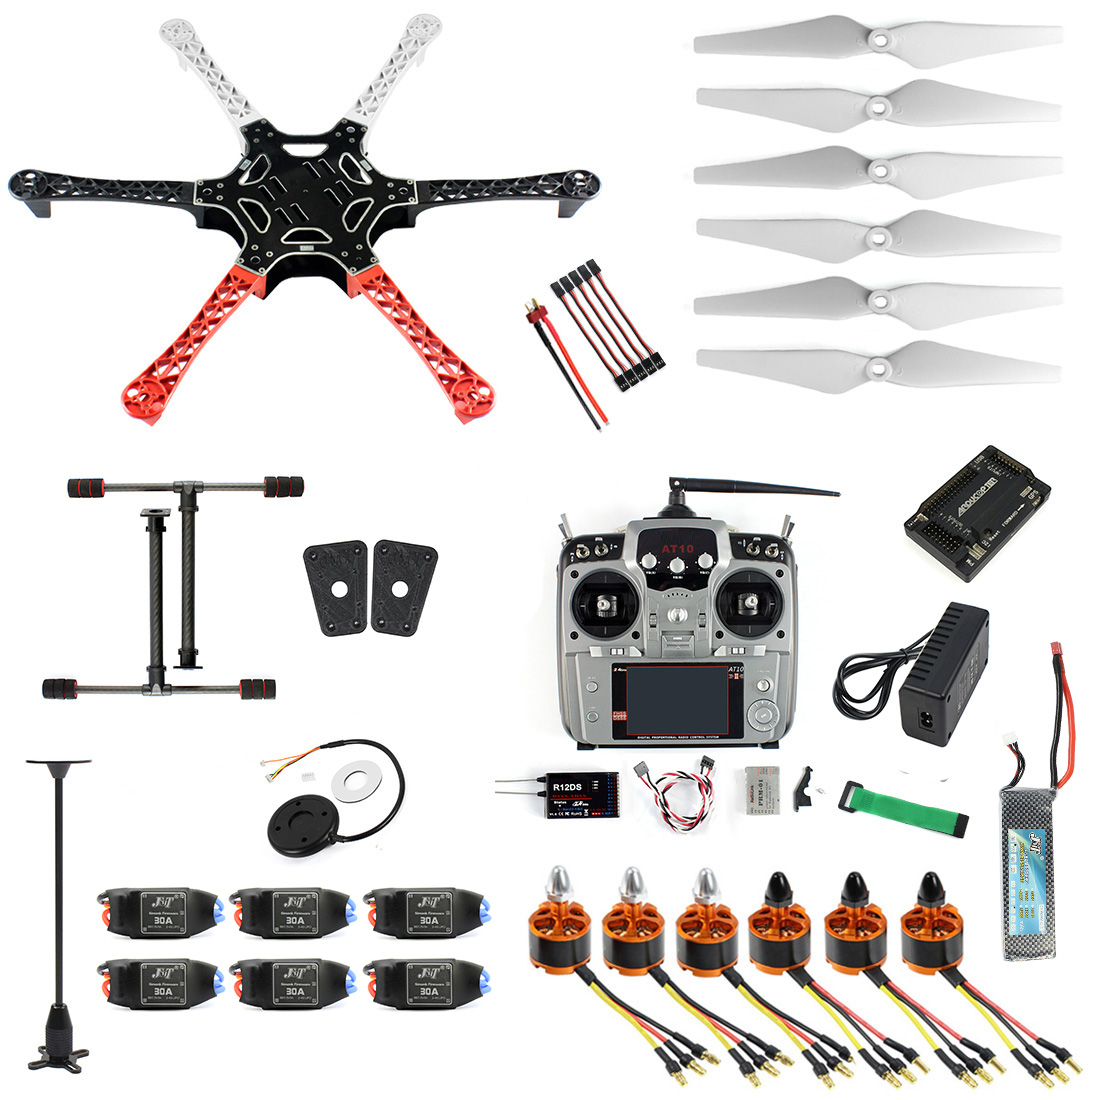 6-Axle RC Aircraft Hexacopter Helicopter RTF Drone with AT10 TX/<font><b>RX</b></font> <font><b>550</b></font> Frame GPS APM2.8 Flight Controller Battery F05114-AQ image